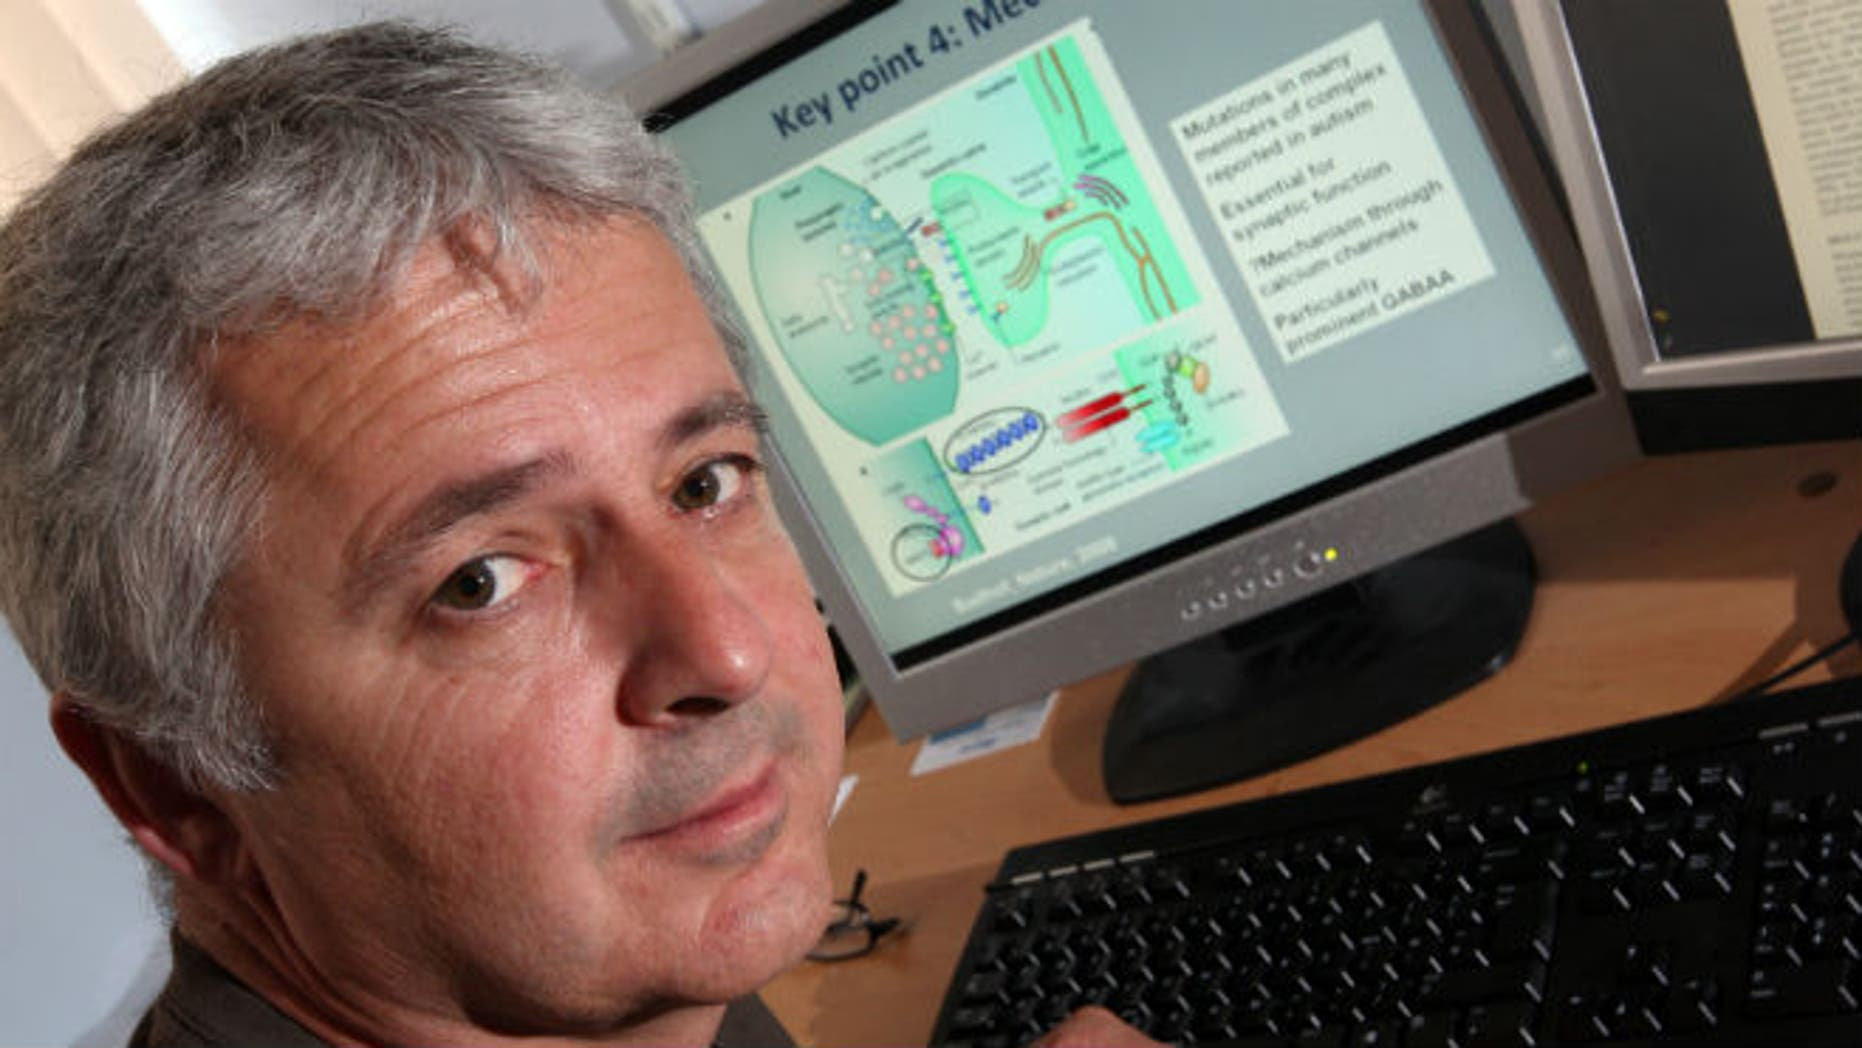 This 2013 file photo provided by Cardiff University shows Dr. Michael O'Donovan, deputy director of the MRC Centre for Neuropsychiatric Genetics and Genomics at Cardiff University School of Medicine in Cardiff, Wales, United Kingdom. (AP Photo/Cardiff University School of Medicine)